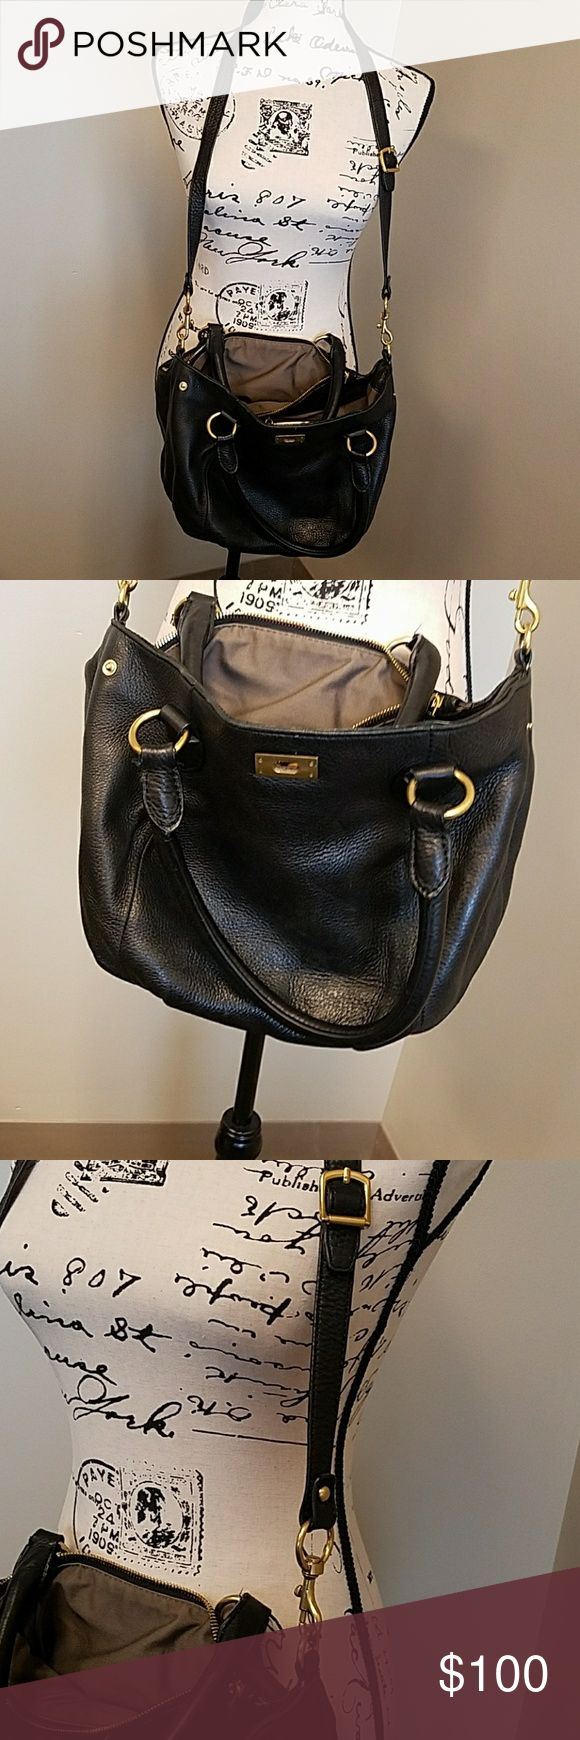 J. Crew black leather hobo bag J. Crew black leather hobo bag. Crossbody with short handles. Gold clasp and zipper. Two sections inside. Front section has two pockets up front and one zippered pocket in the back. Gently used. J. Crew Bags Hobos